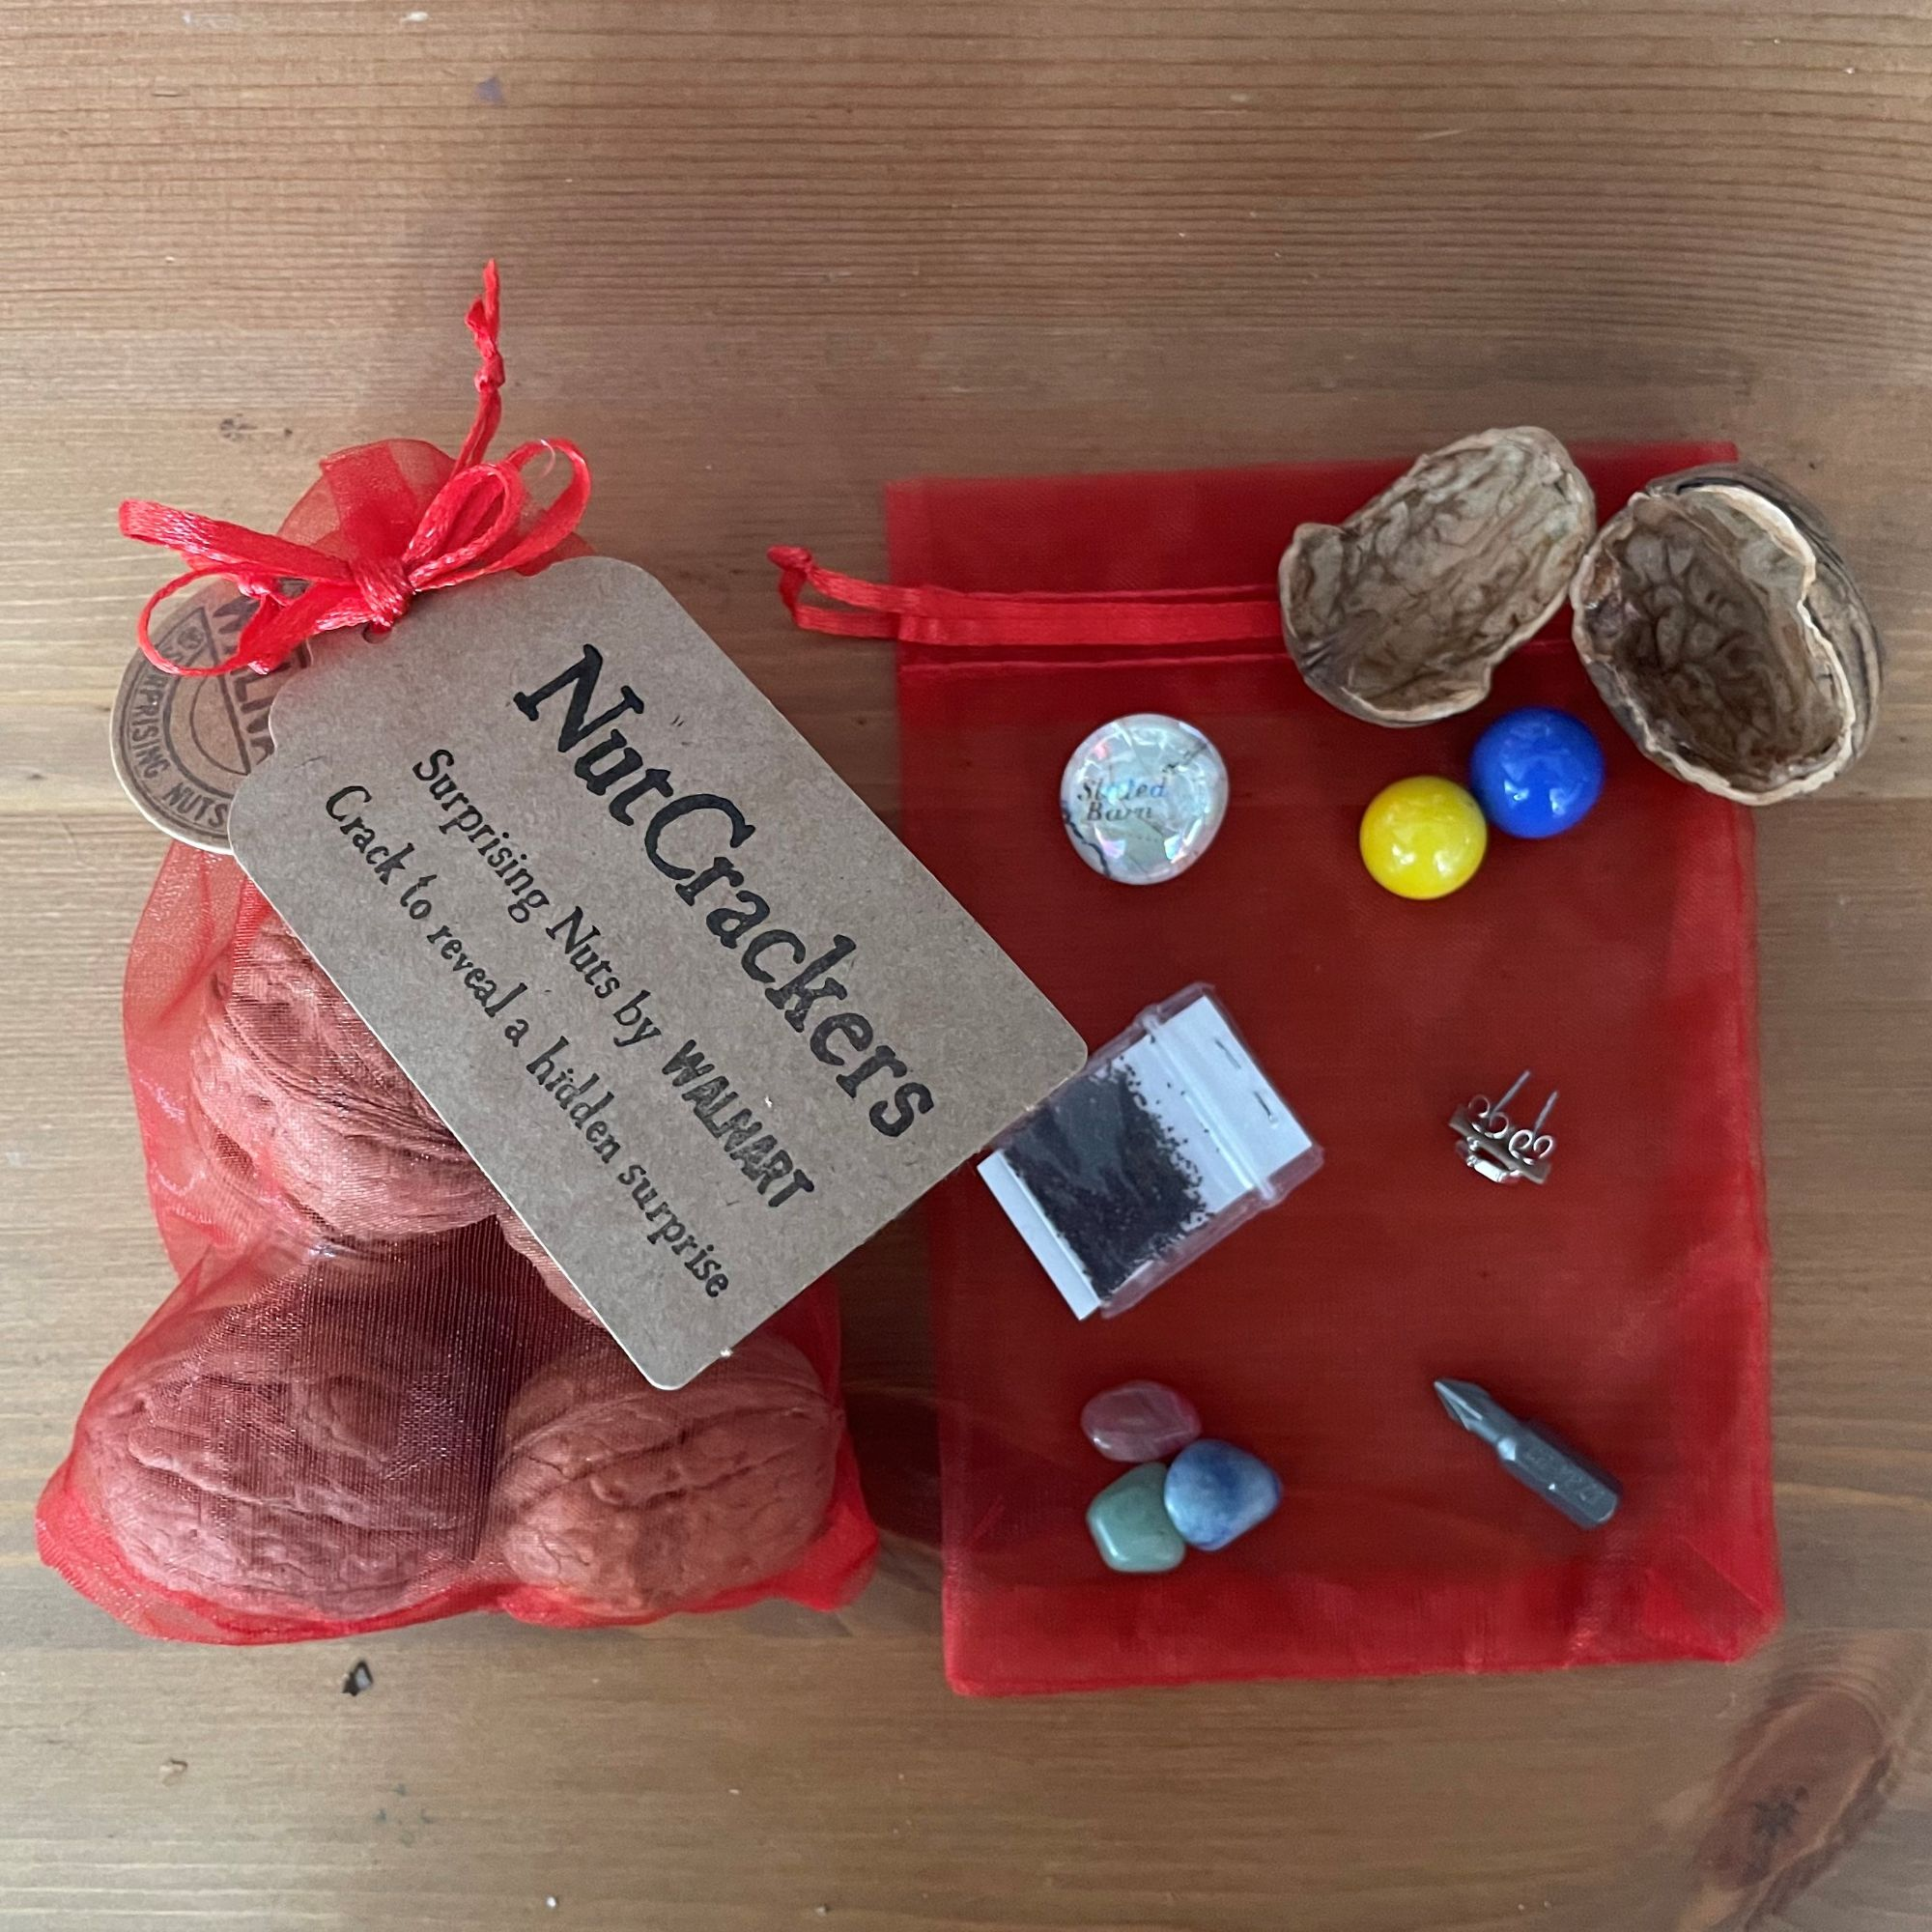 NutCrackers - Assorted Walnut shell surprise crackers in a red organza bag - contents.jpg